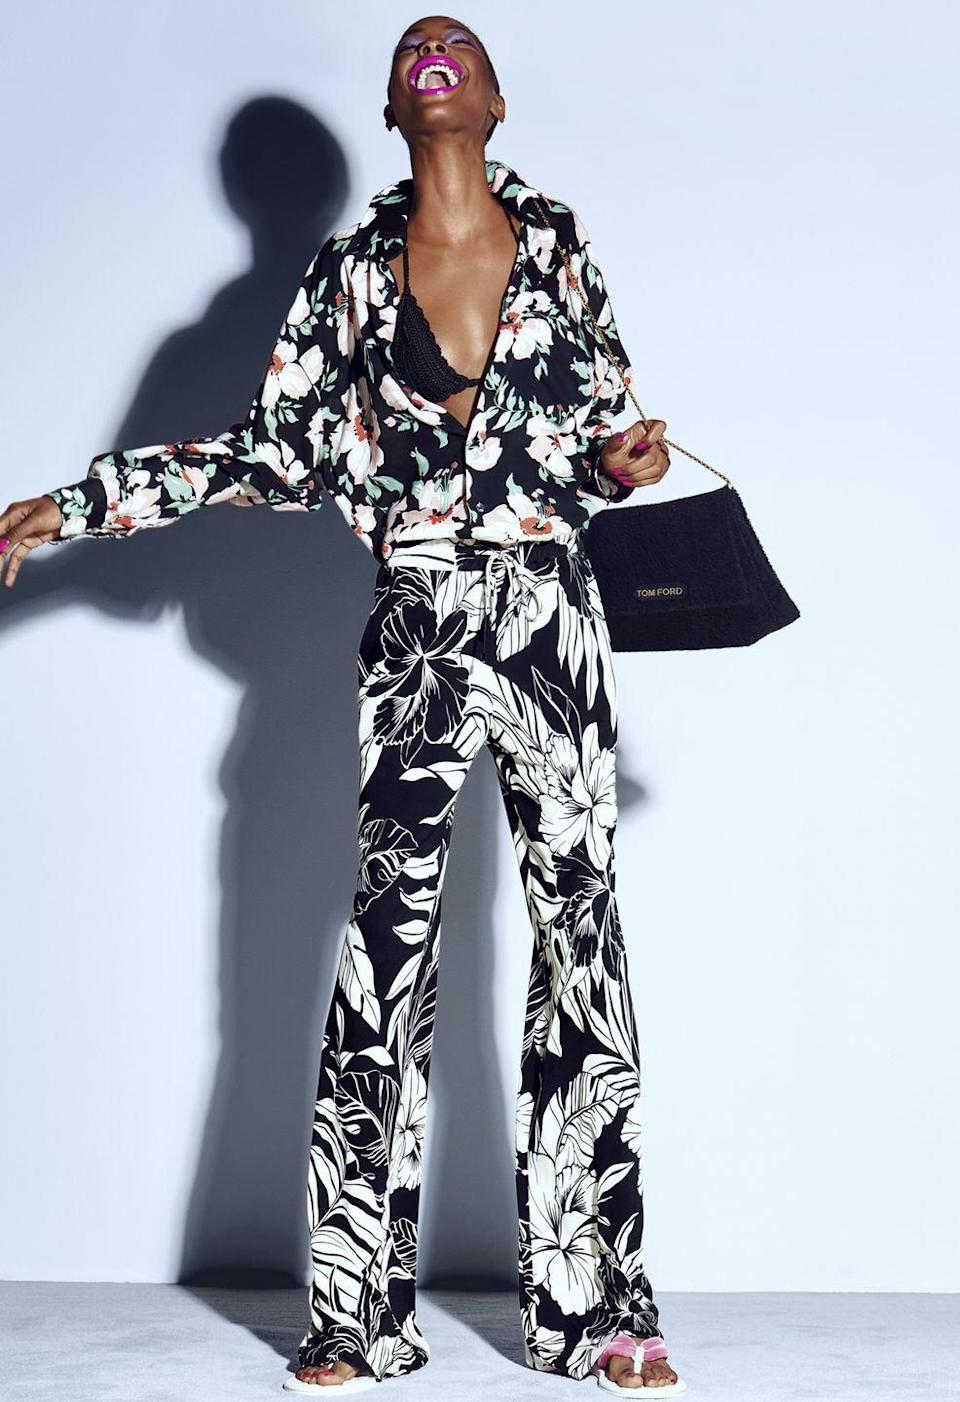 "<p>""The last thing I want to see is serious clothes,"" Tom Ford wrote in his press release for his namesake brand's SS21 collection. ""I think we need an escape. I think we want to smile. I know what's going on in our world right now doesn't make us want to smile. So that's what I've done: hopeful clothes that make you smile.""</p><p>How did he make us smile? With bold floral printed two-pieces, a pattern clash, colourful accessories and an incredibly joyful campaign. While it might not have been the A-list-fronted fashion show we are used to seeing from the designer, Ford certainly succeeded in injecting a bit of happiness and excitement into fashion again. Scroll through to see highlights of the collection.</p>"